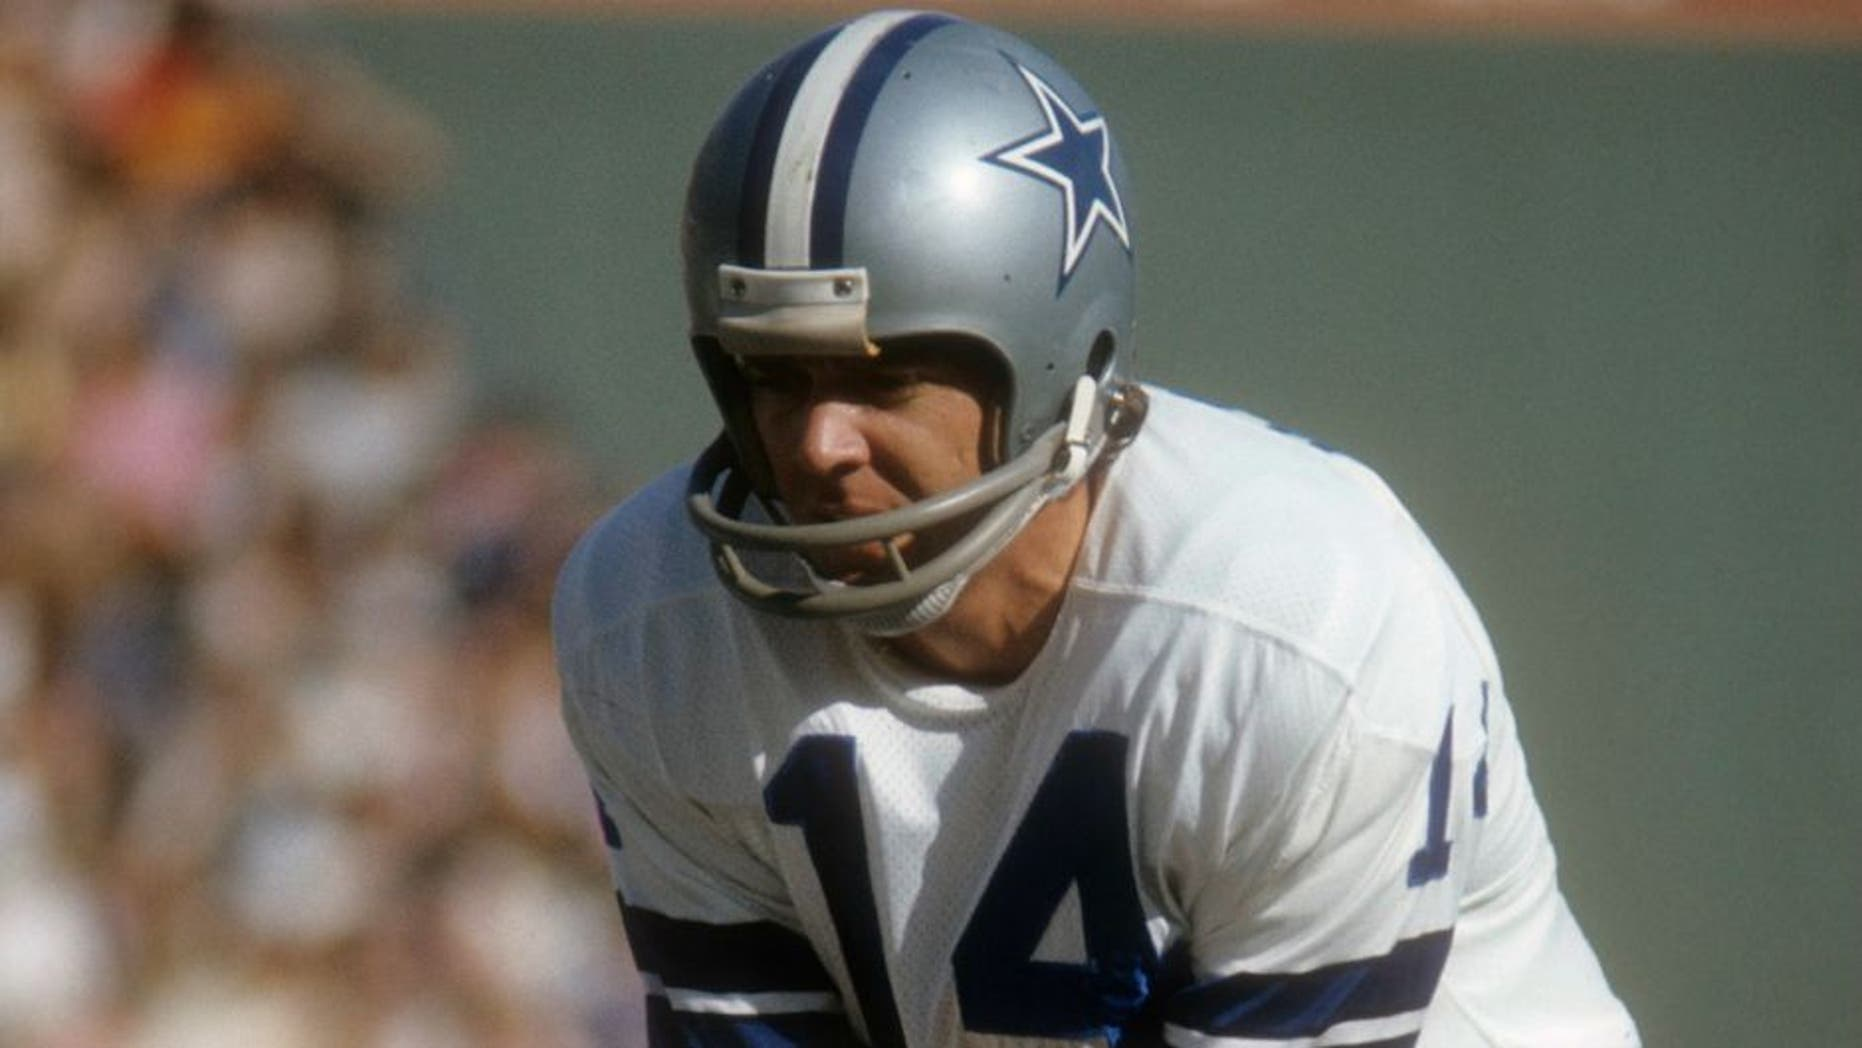 CIRCA 1970: Quarterback Craig Morton #14 of the Dallas Cowboys stands under center Dave Manders #51 during an NFL football game circa 1970. Morton played for the Cowboy from 1965-74. (Photo by Focus on Sport/Getty Images) *** Local Caption *** Craig Morton;Dave Manders